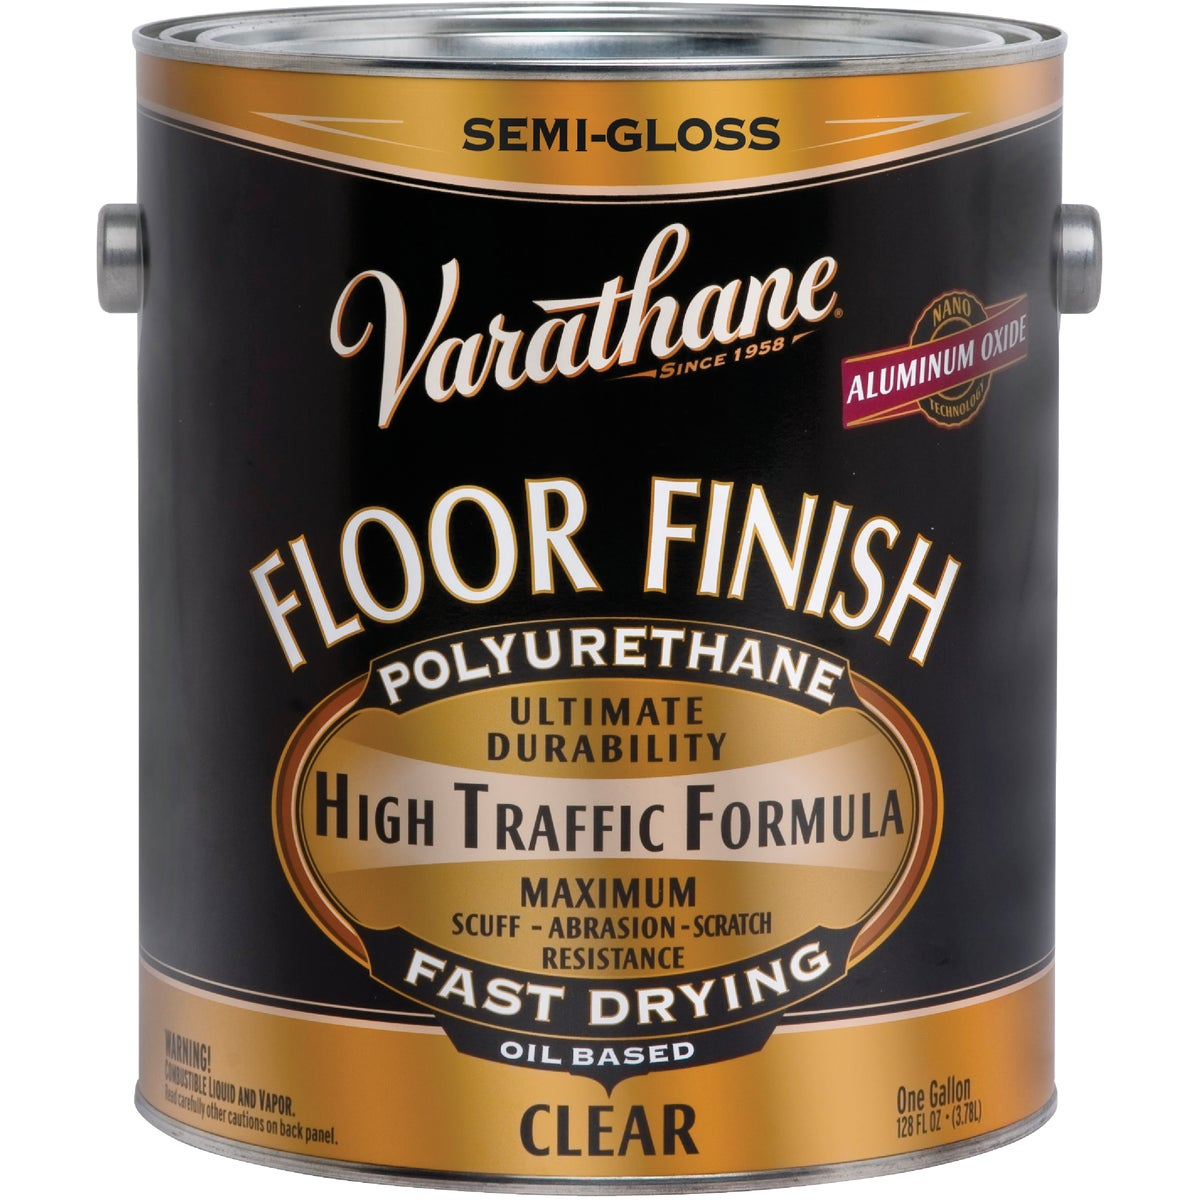 INT S/G FLOOR FINISH - 130131 by Rustoleum